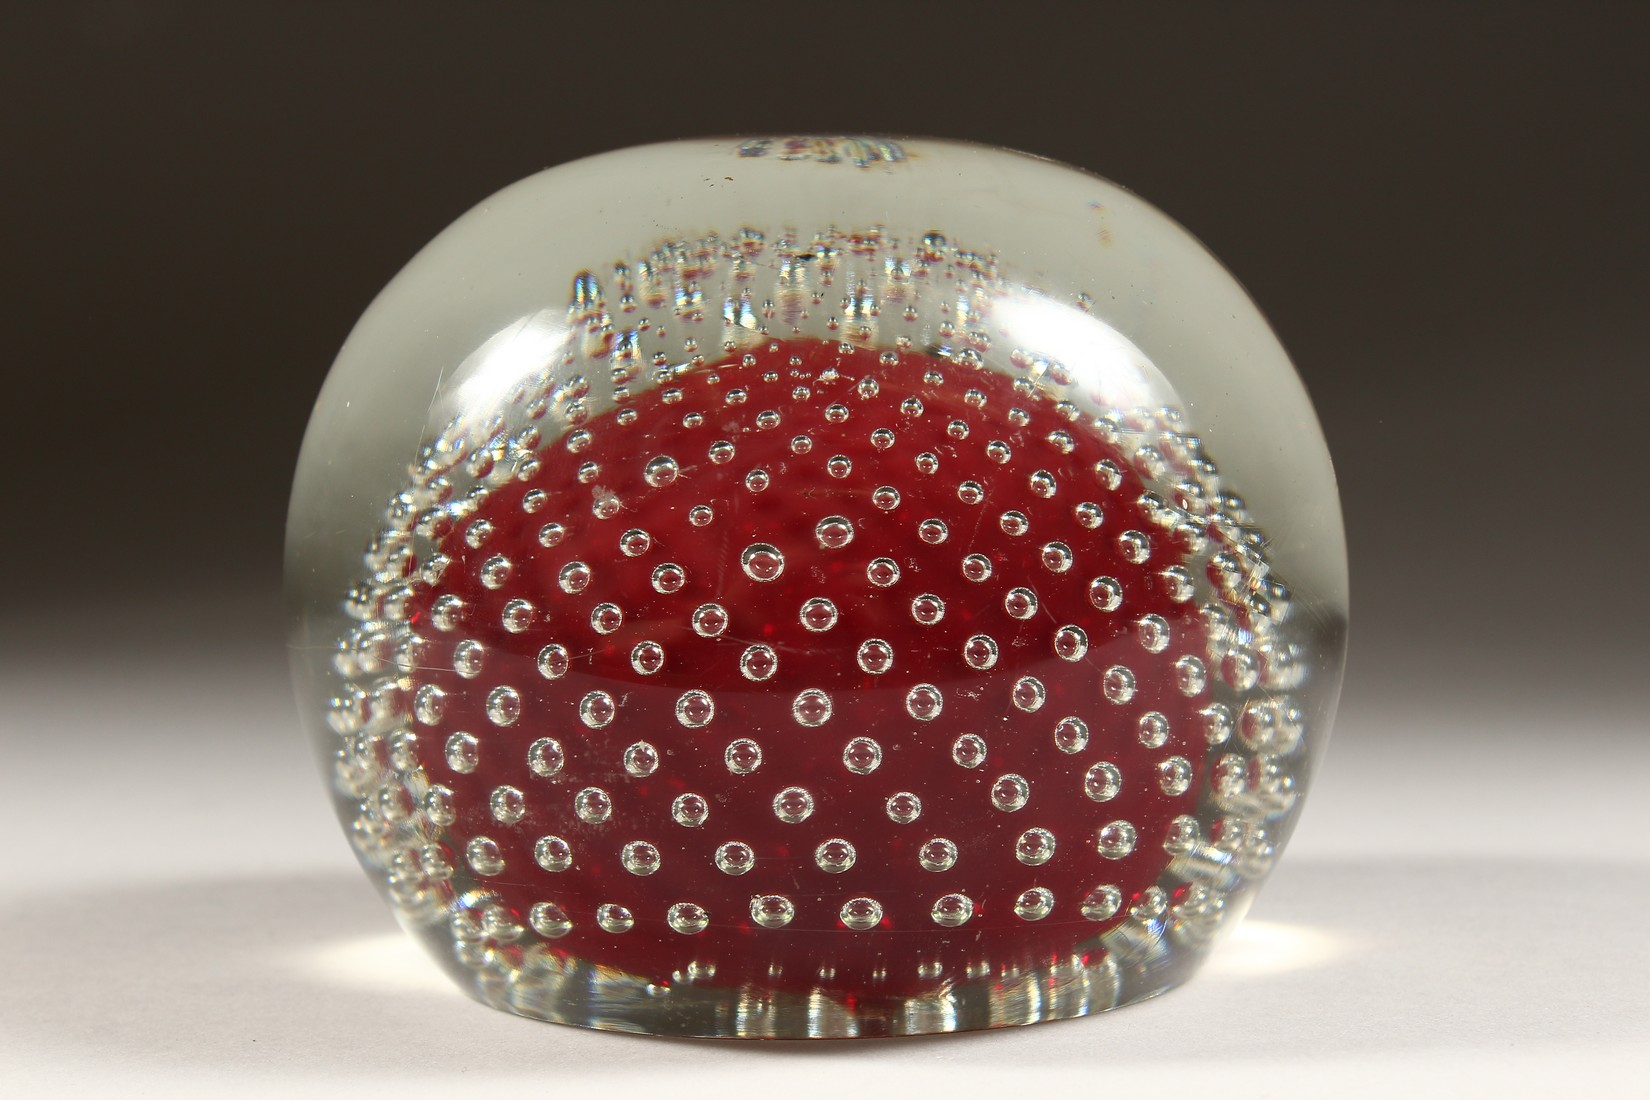 A LARGE GLASS PAPERWEIGHT. - Image 4 of 6